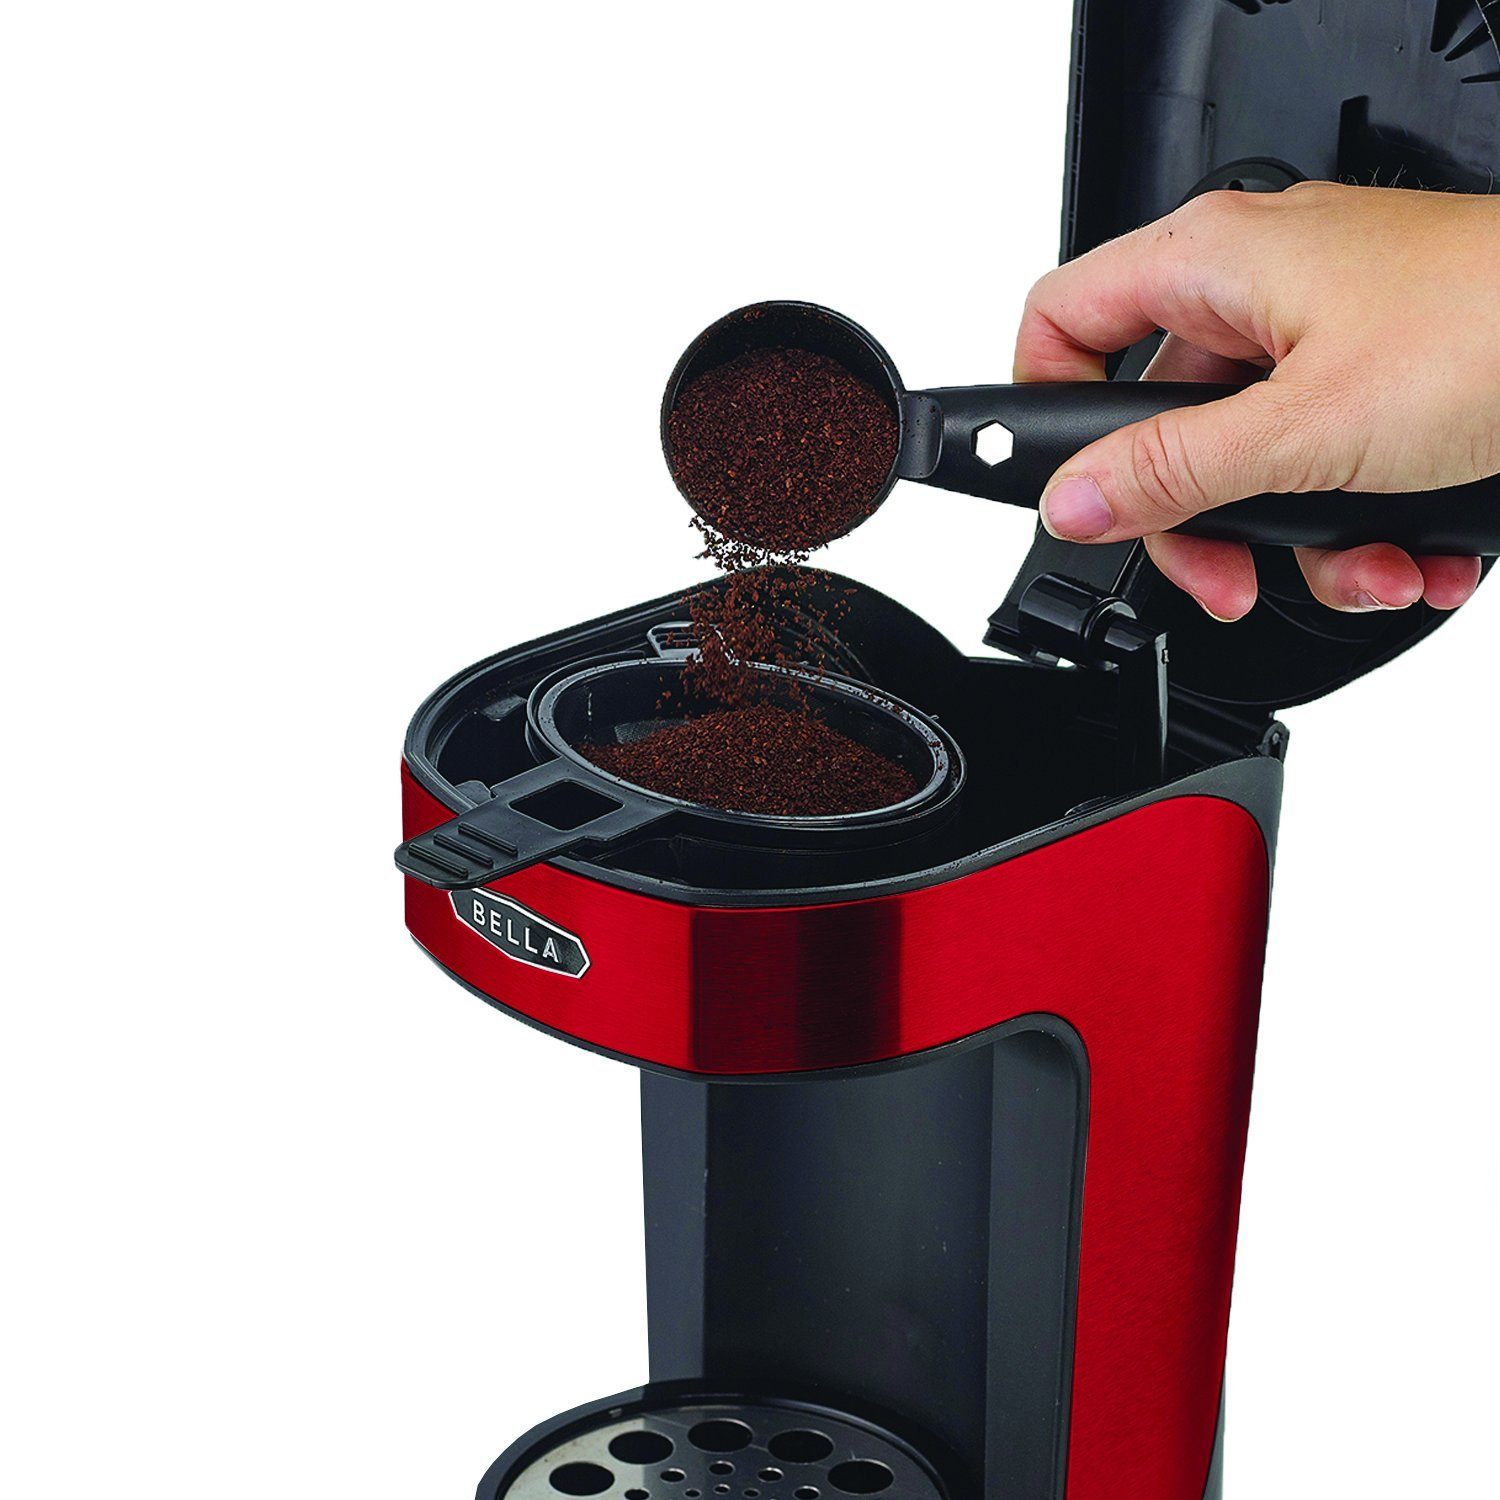 Bella One Scoop One Cup Coffee Maker Red2 Coffee Maker That Makes Cappuccino